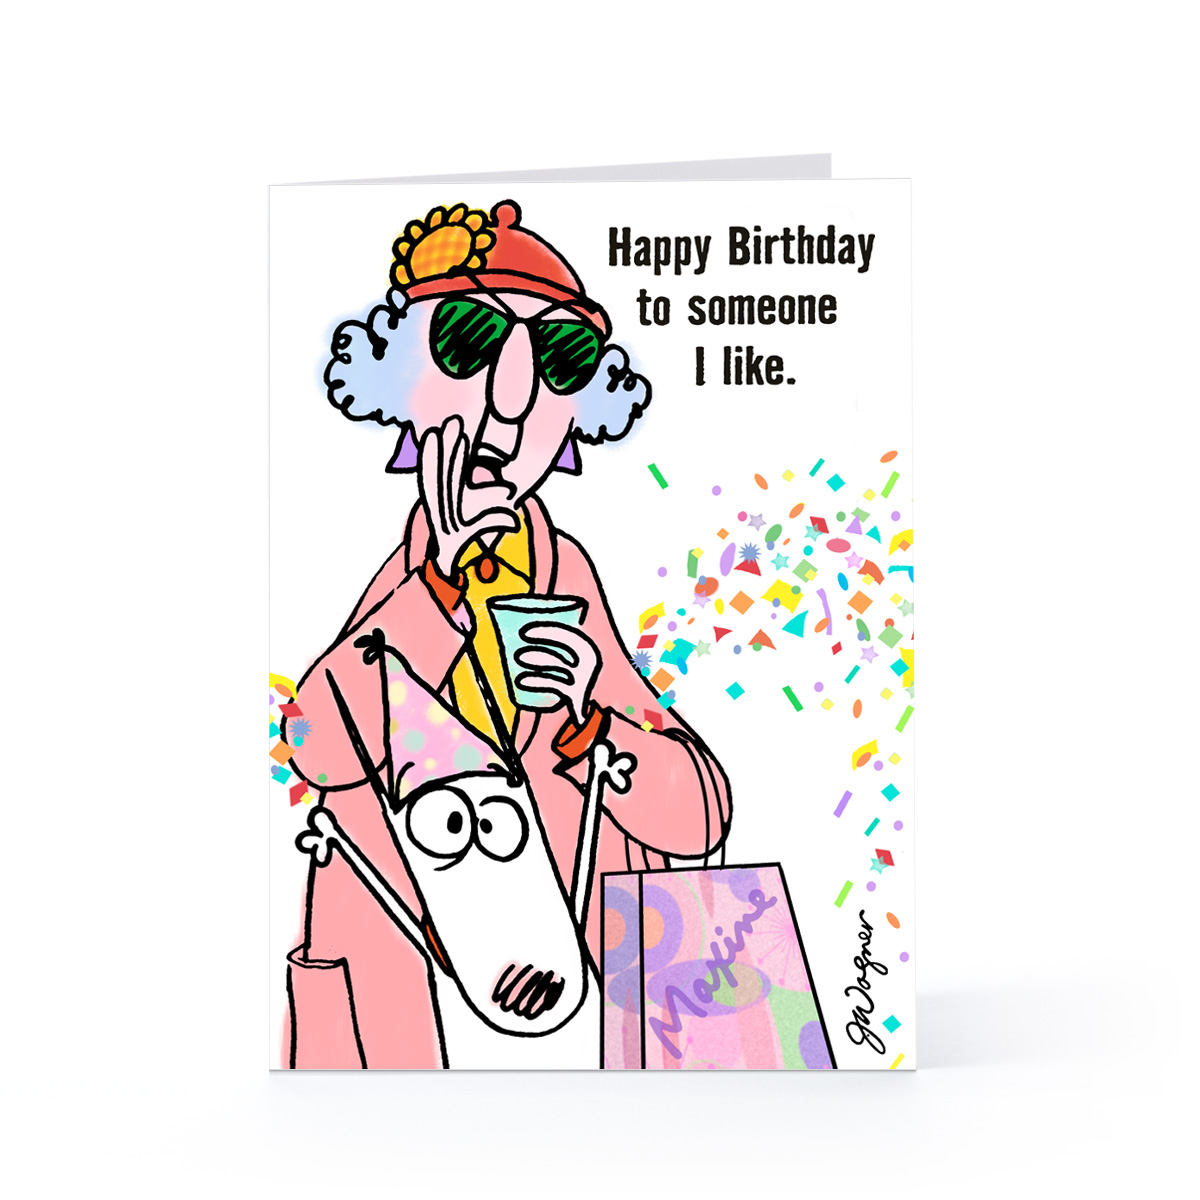 Maxine Birthday Quotes. QuotesGram